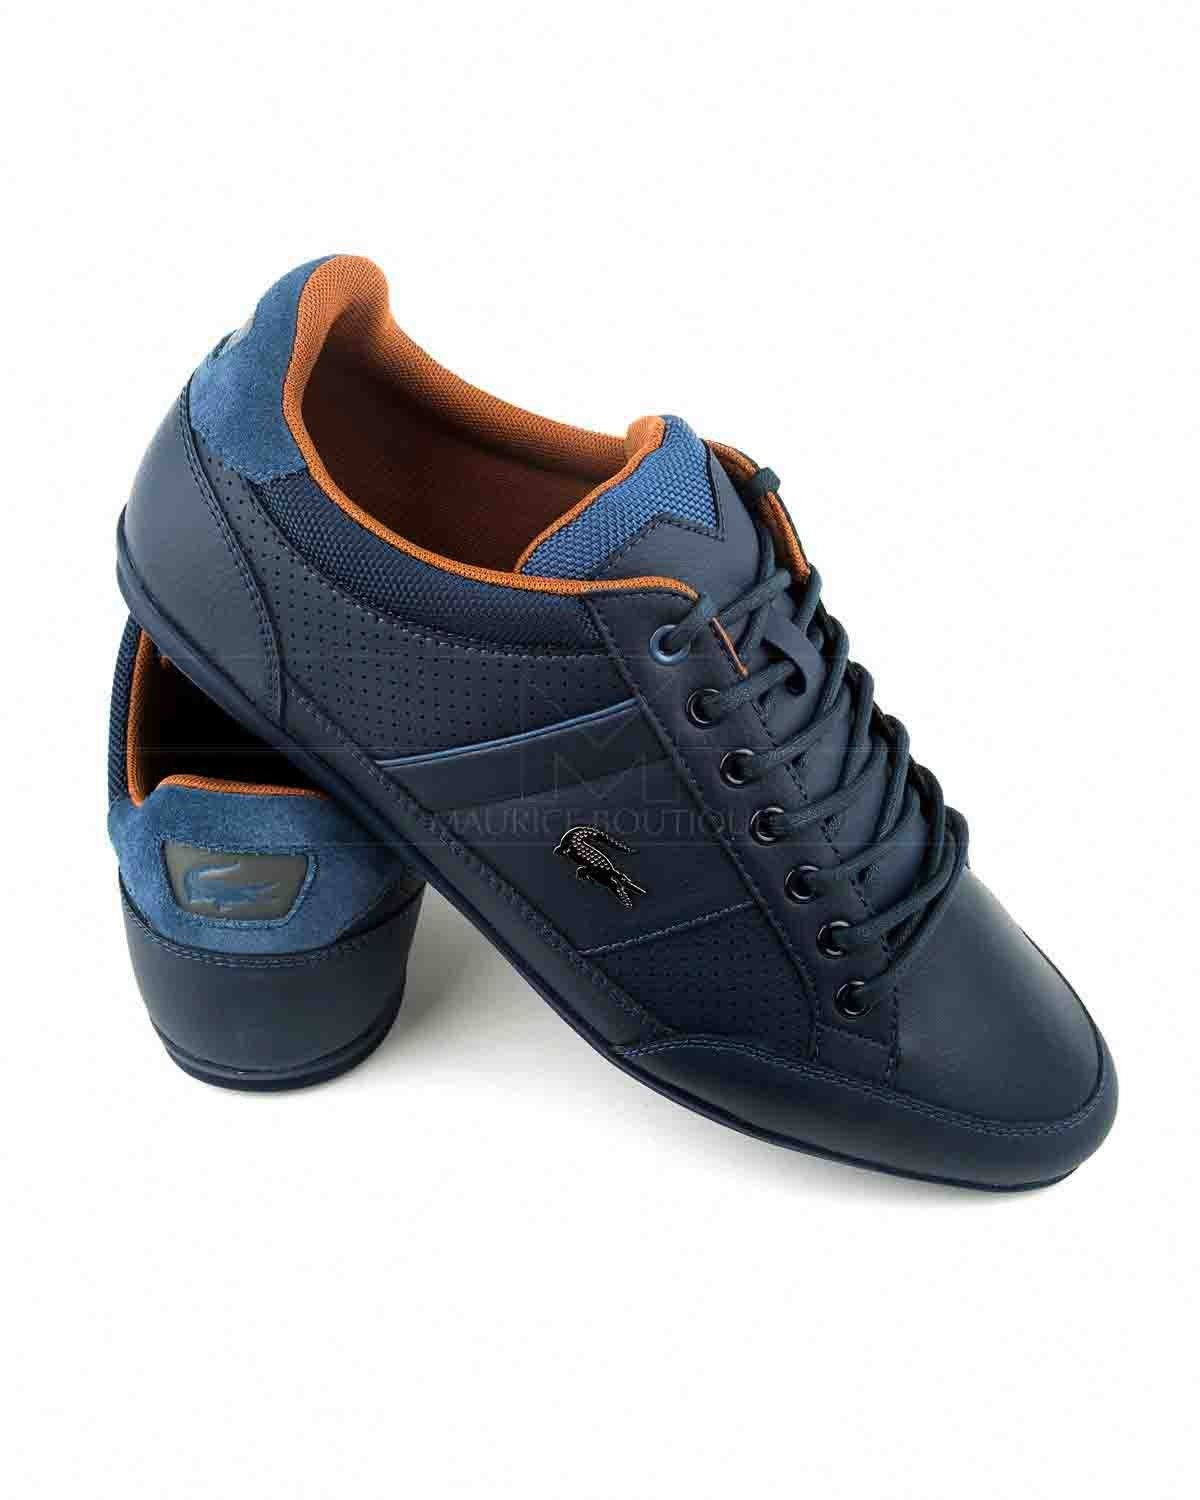 e8e7a1af LACOSTE © Navy Blue Shoes ✶ Chaymon | BEST PRICE Lacoste Shoes Mens,  Lacoste Men